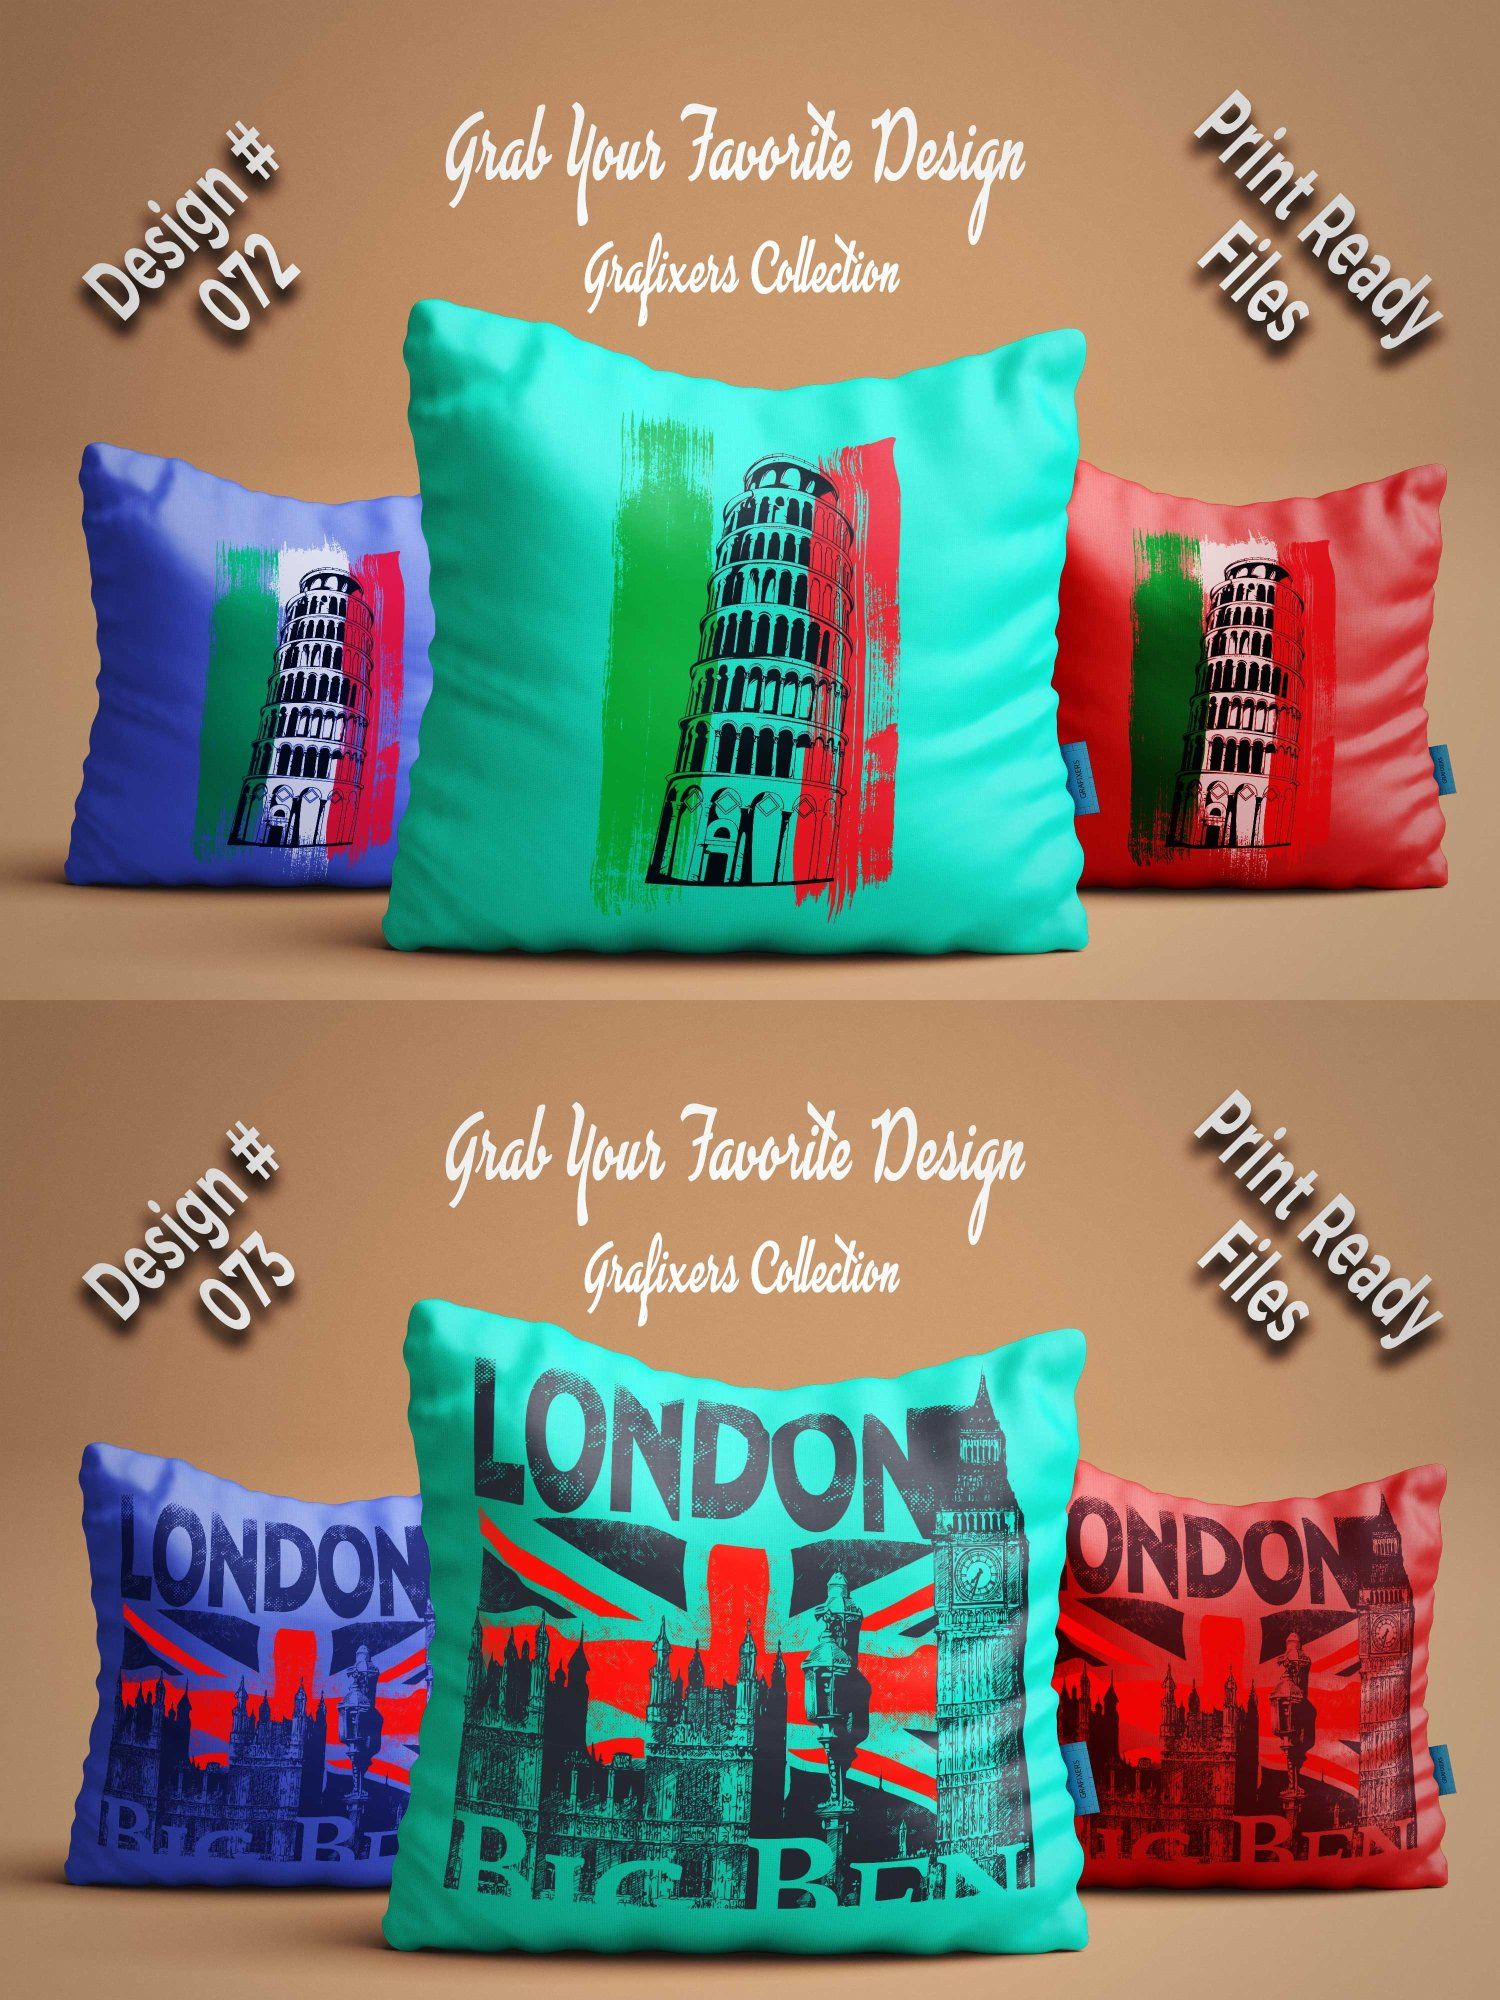 We design cushion covers if you want to buy only the design files